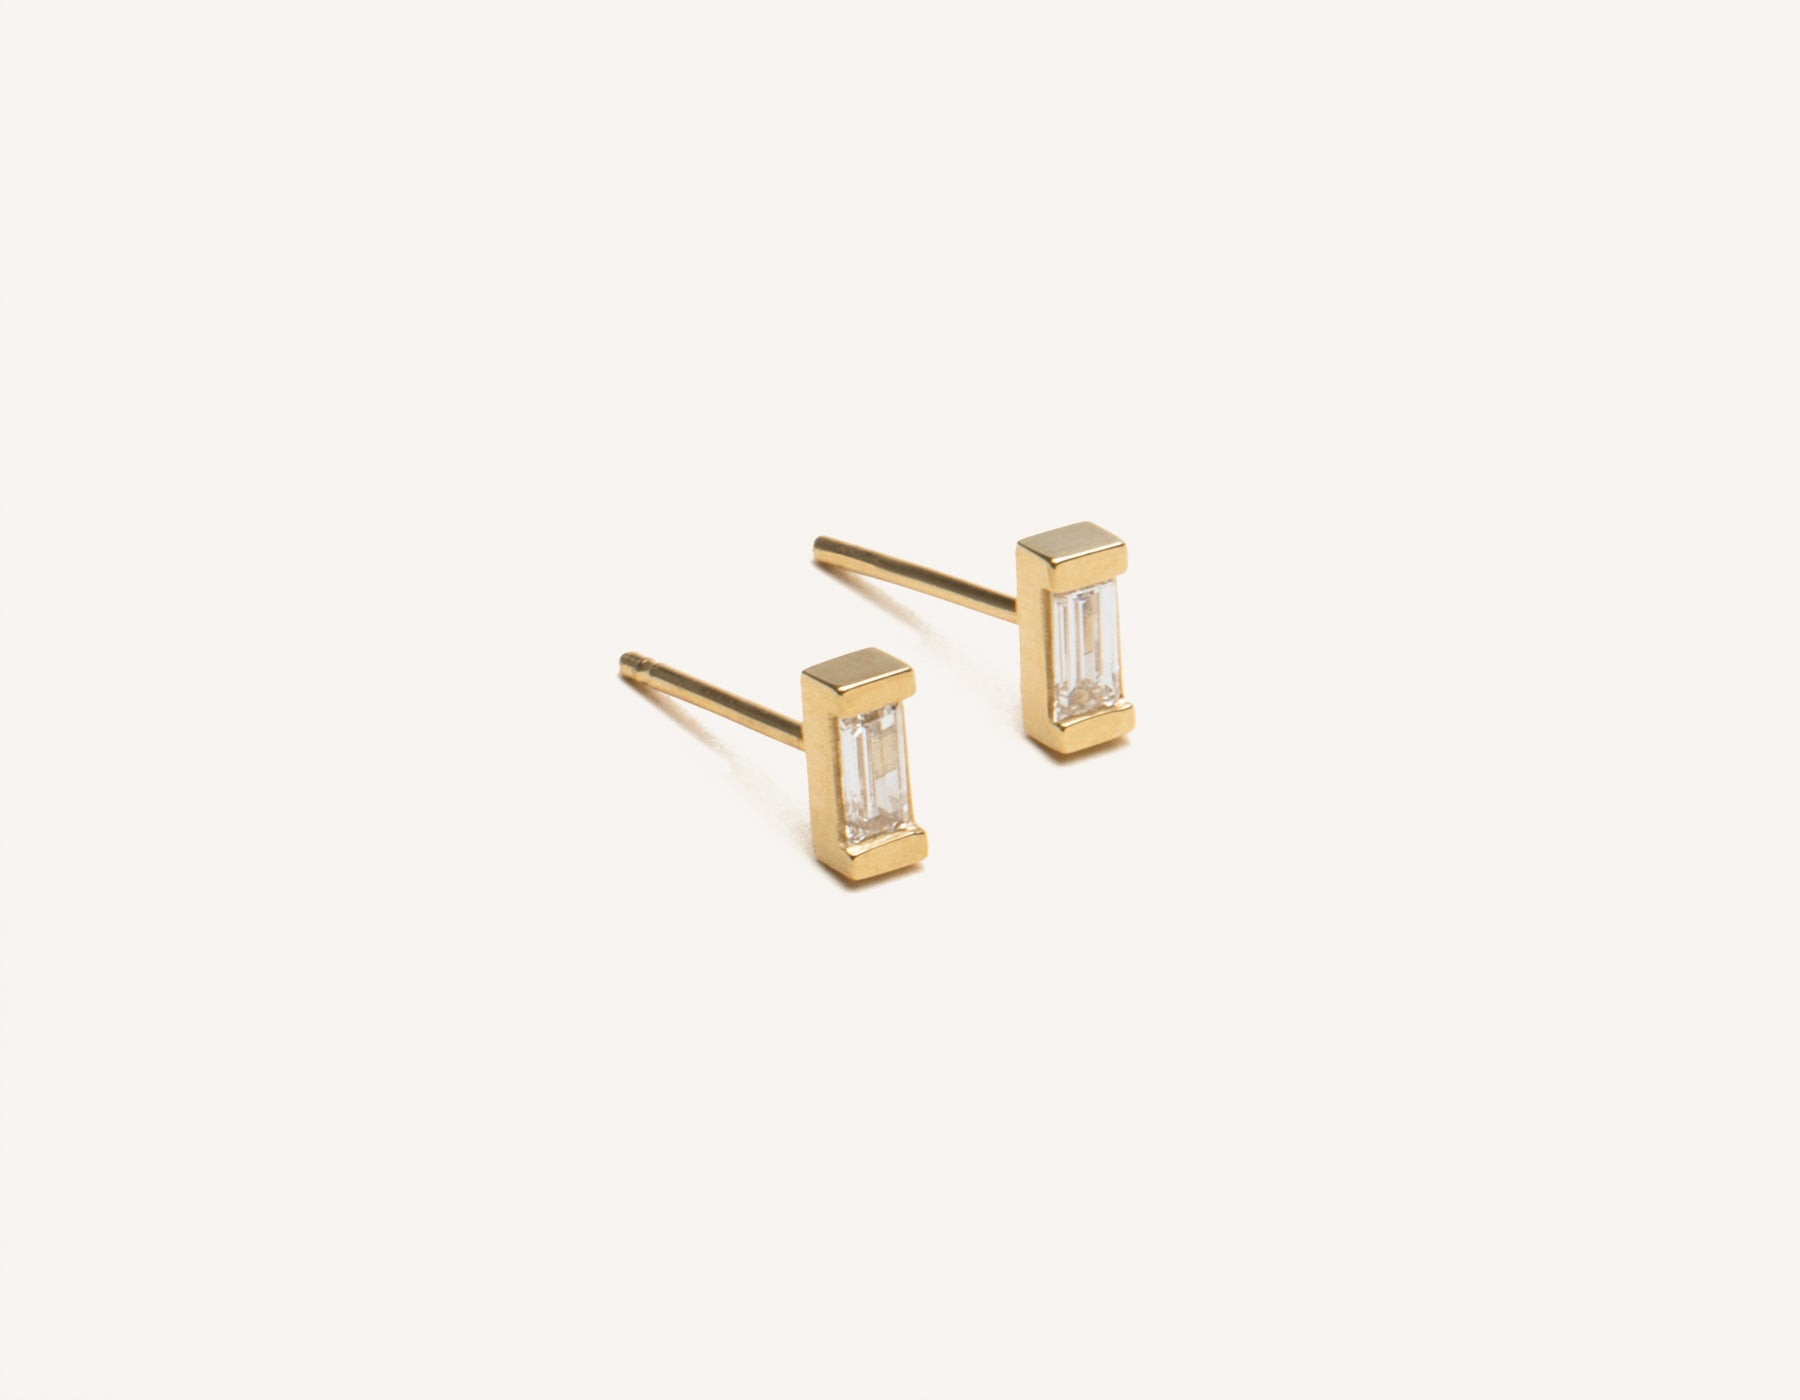 Modern Minimalist jewelry 14k solid gold Baguette Diamond stud Earrings from Vrai & Oro in a channel setting, 14K Yellow Gold